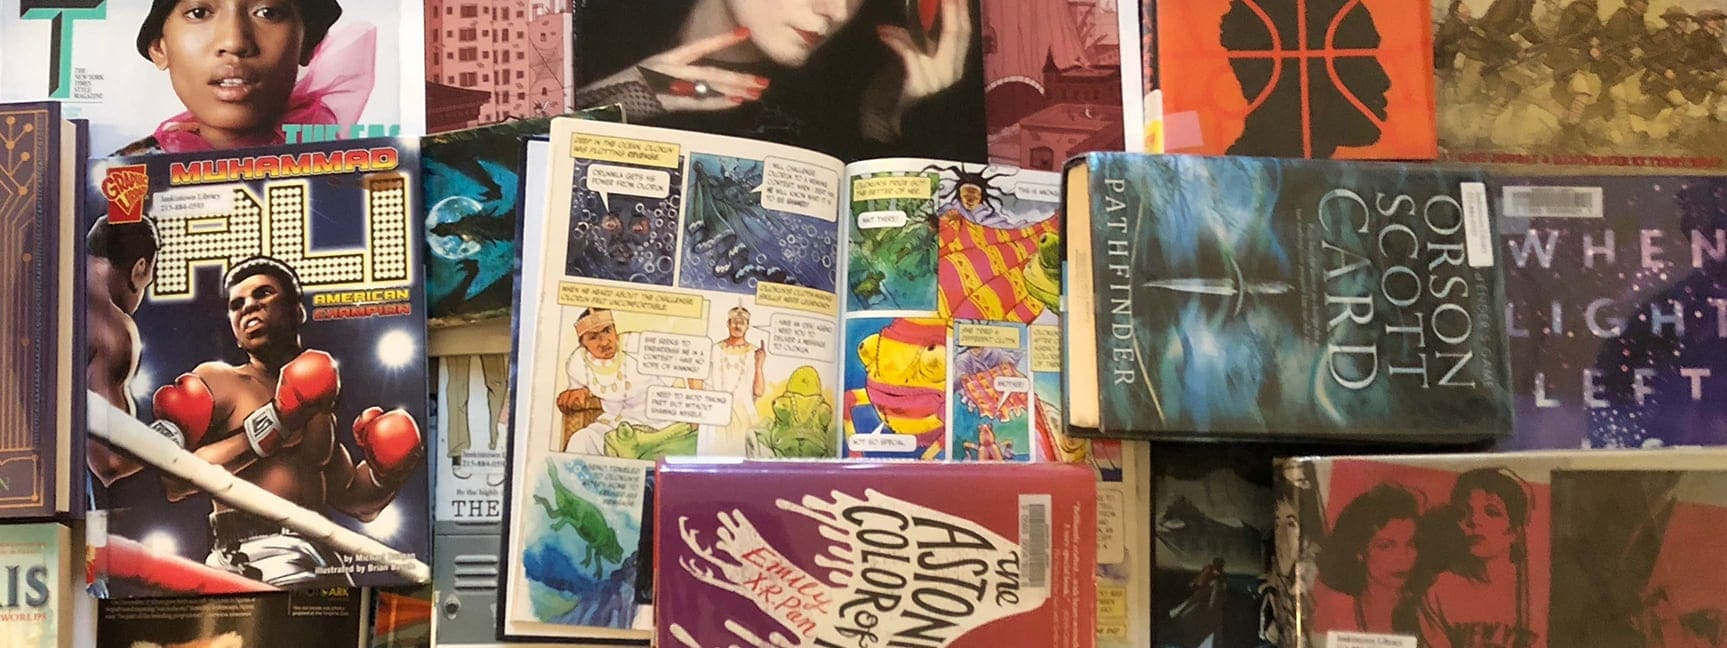 a collage of books, graphic novels, and magazines